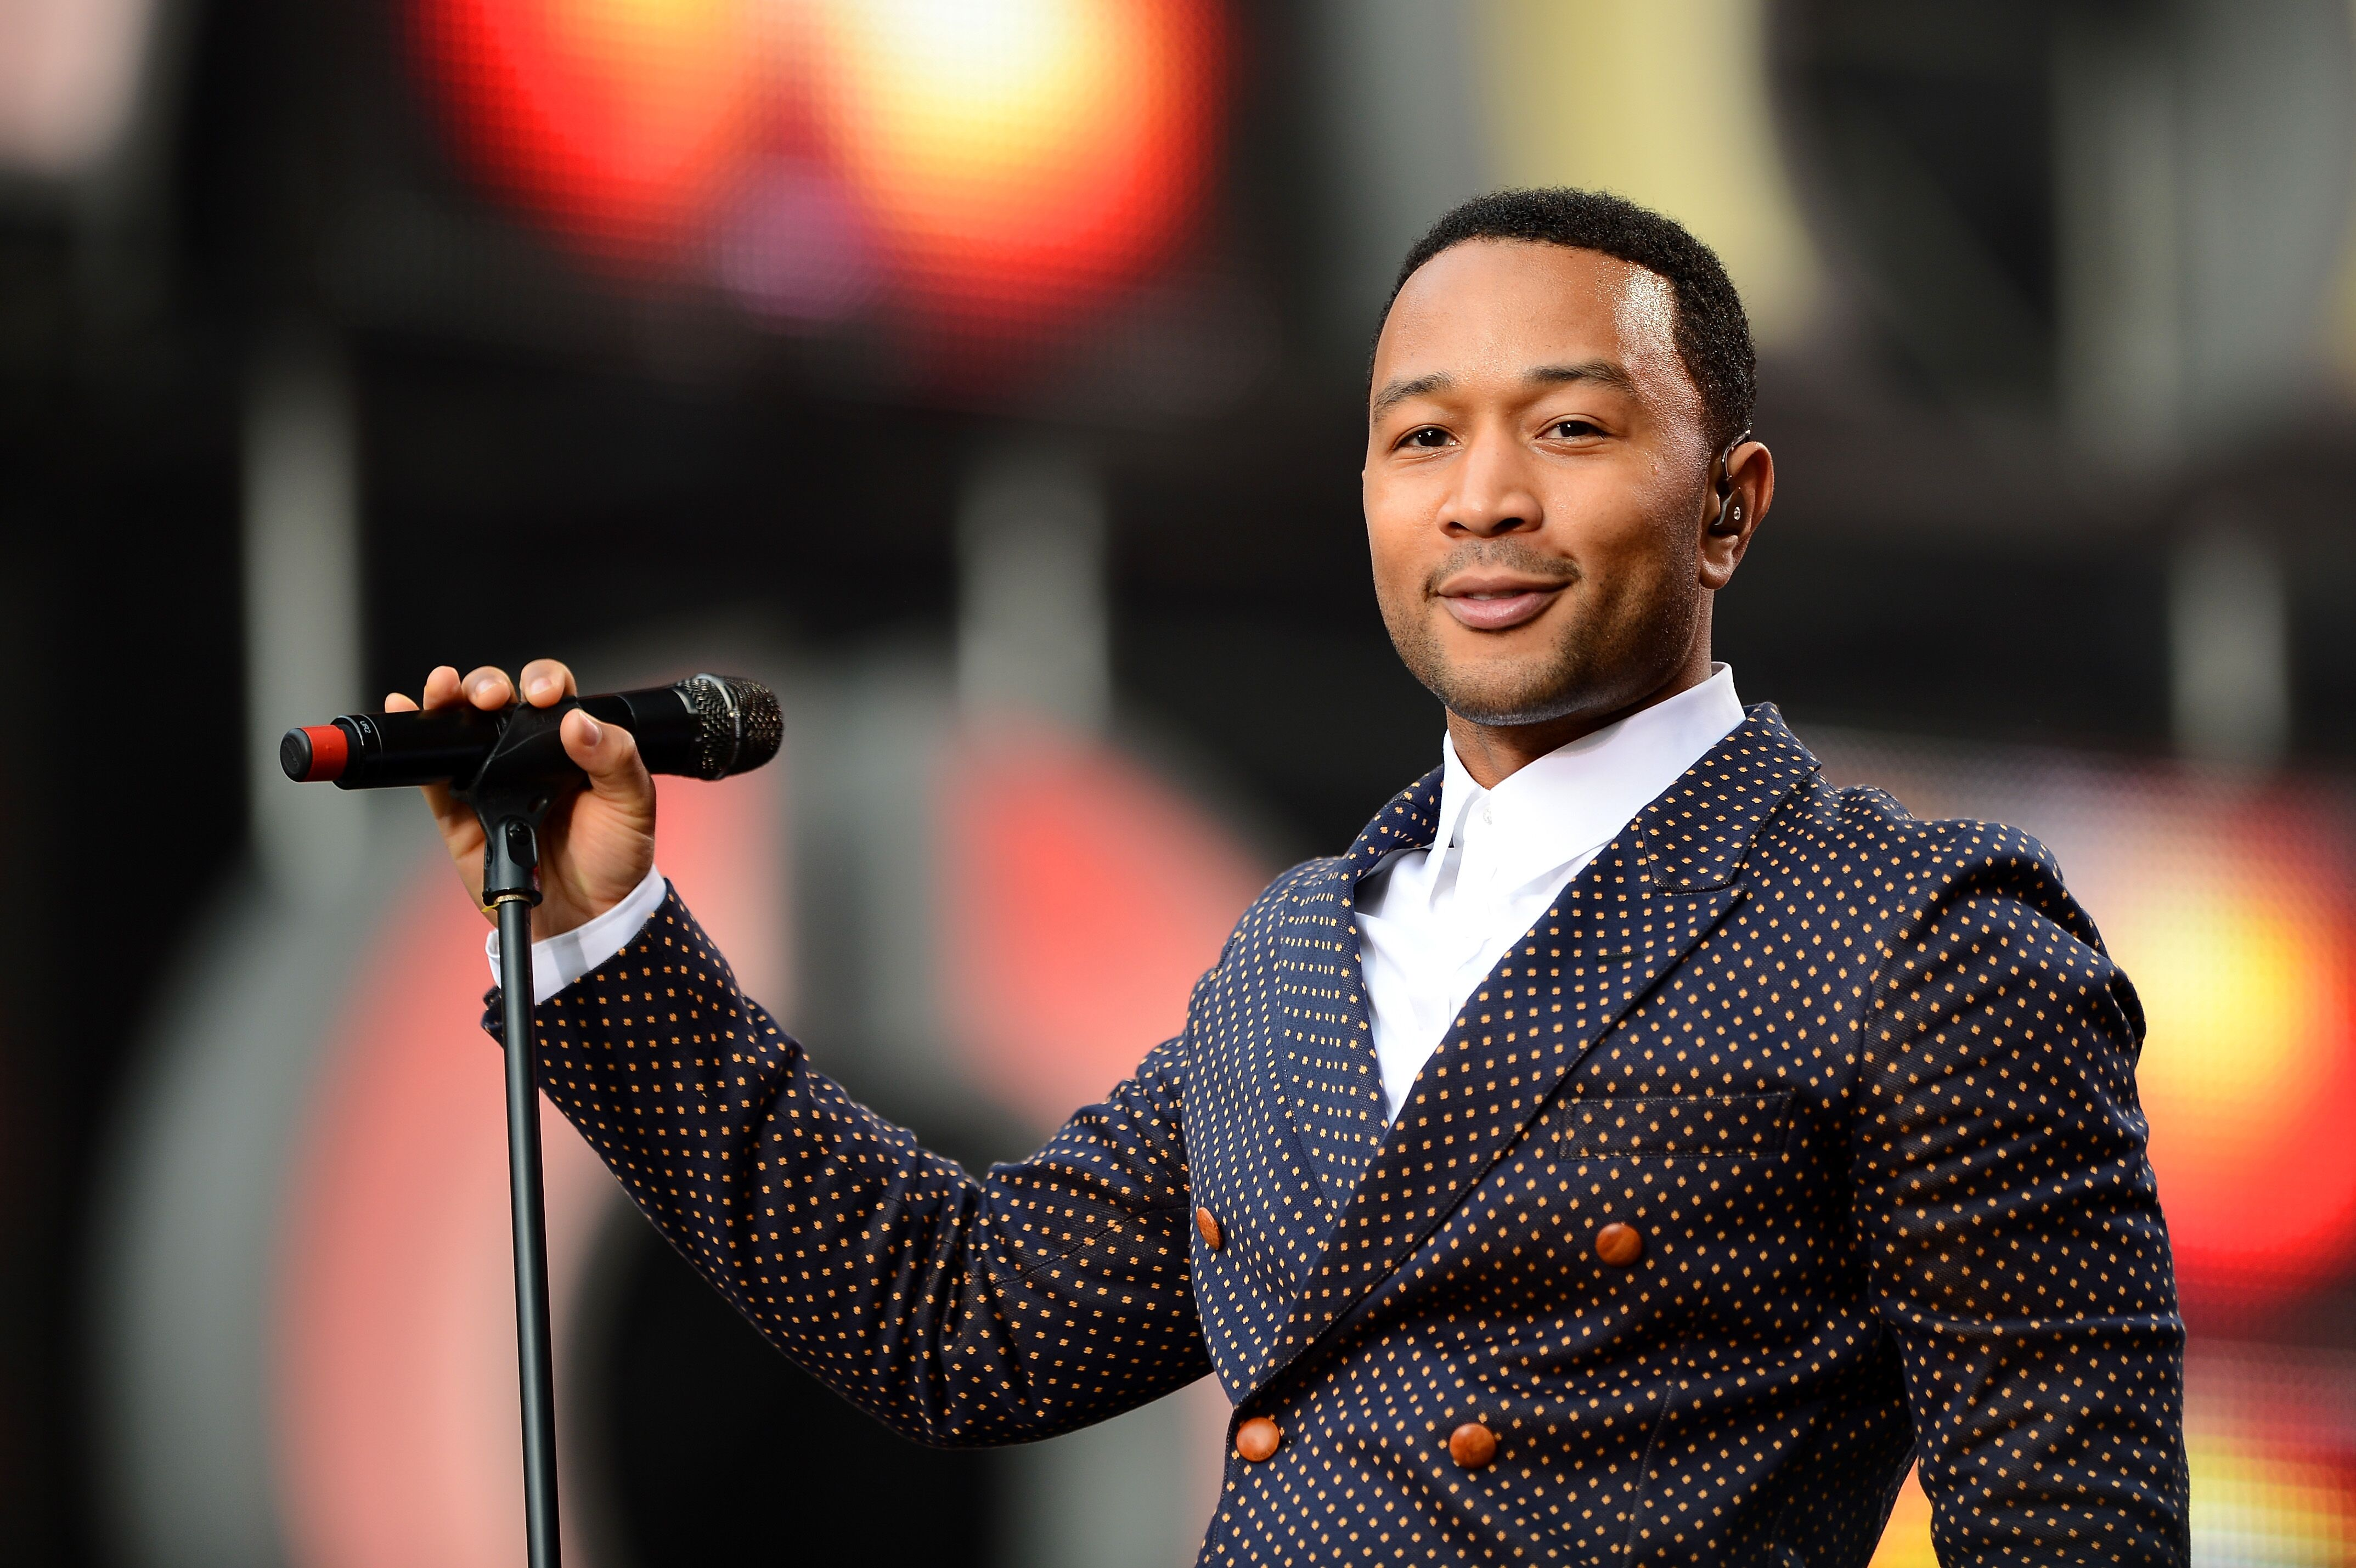 John Legend performing onstage | Source: Getty Images/GlobalImagesUkraine